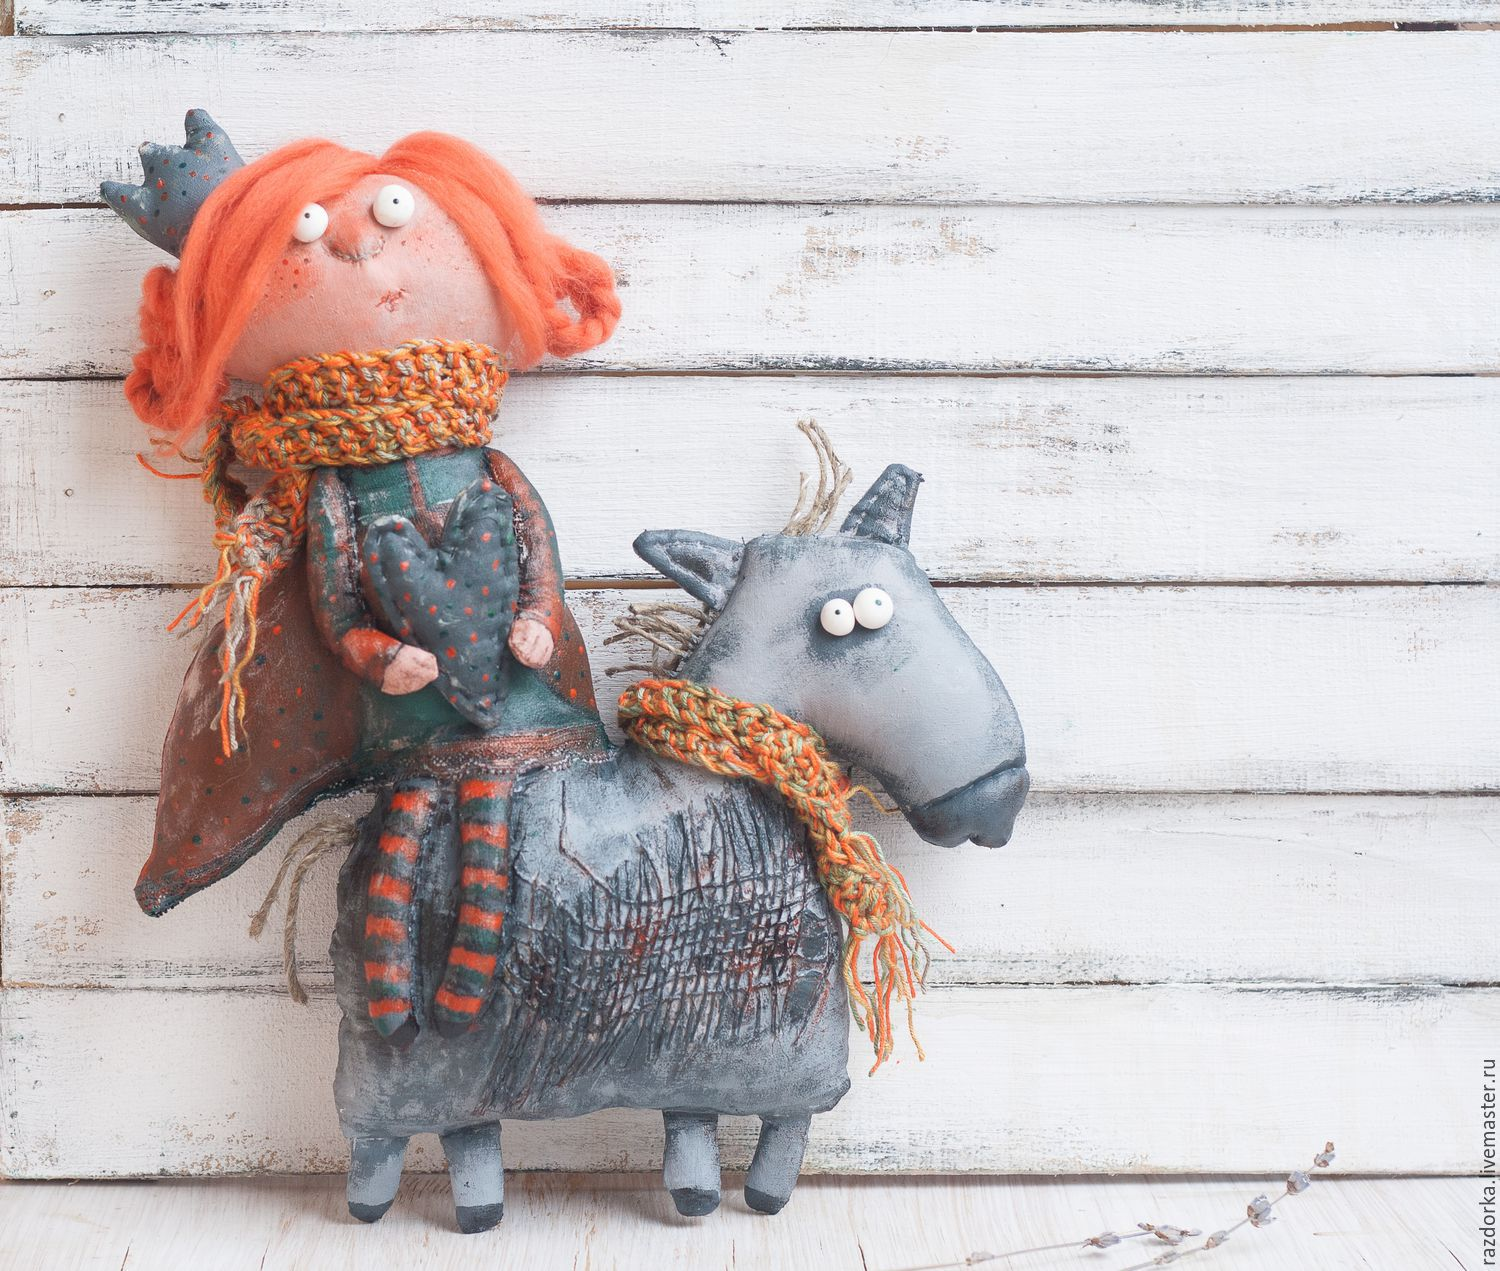 doll in the gift, art doll, ridiculous doll, primed textile, princess on horse, funny gift